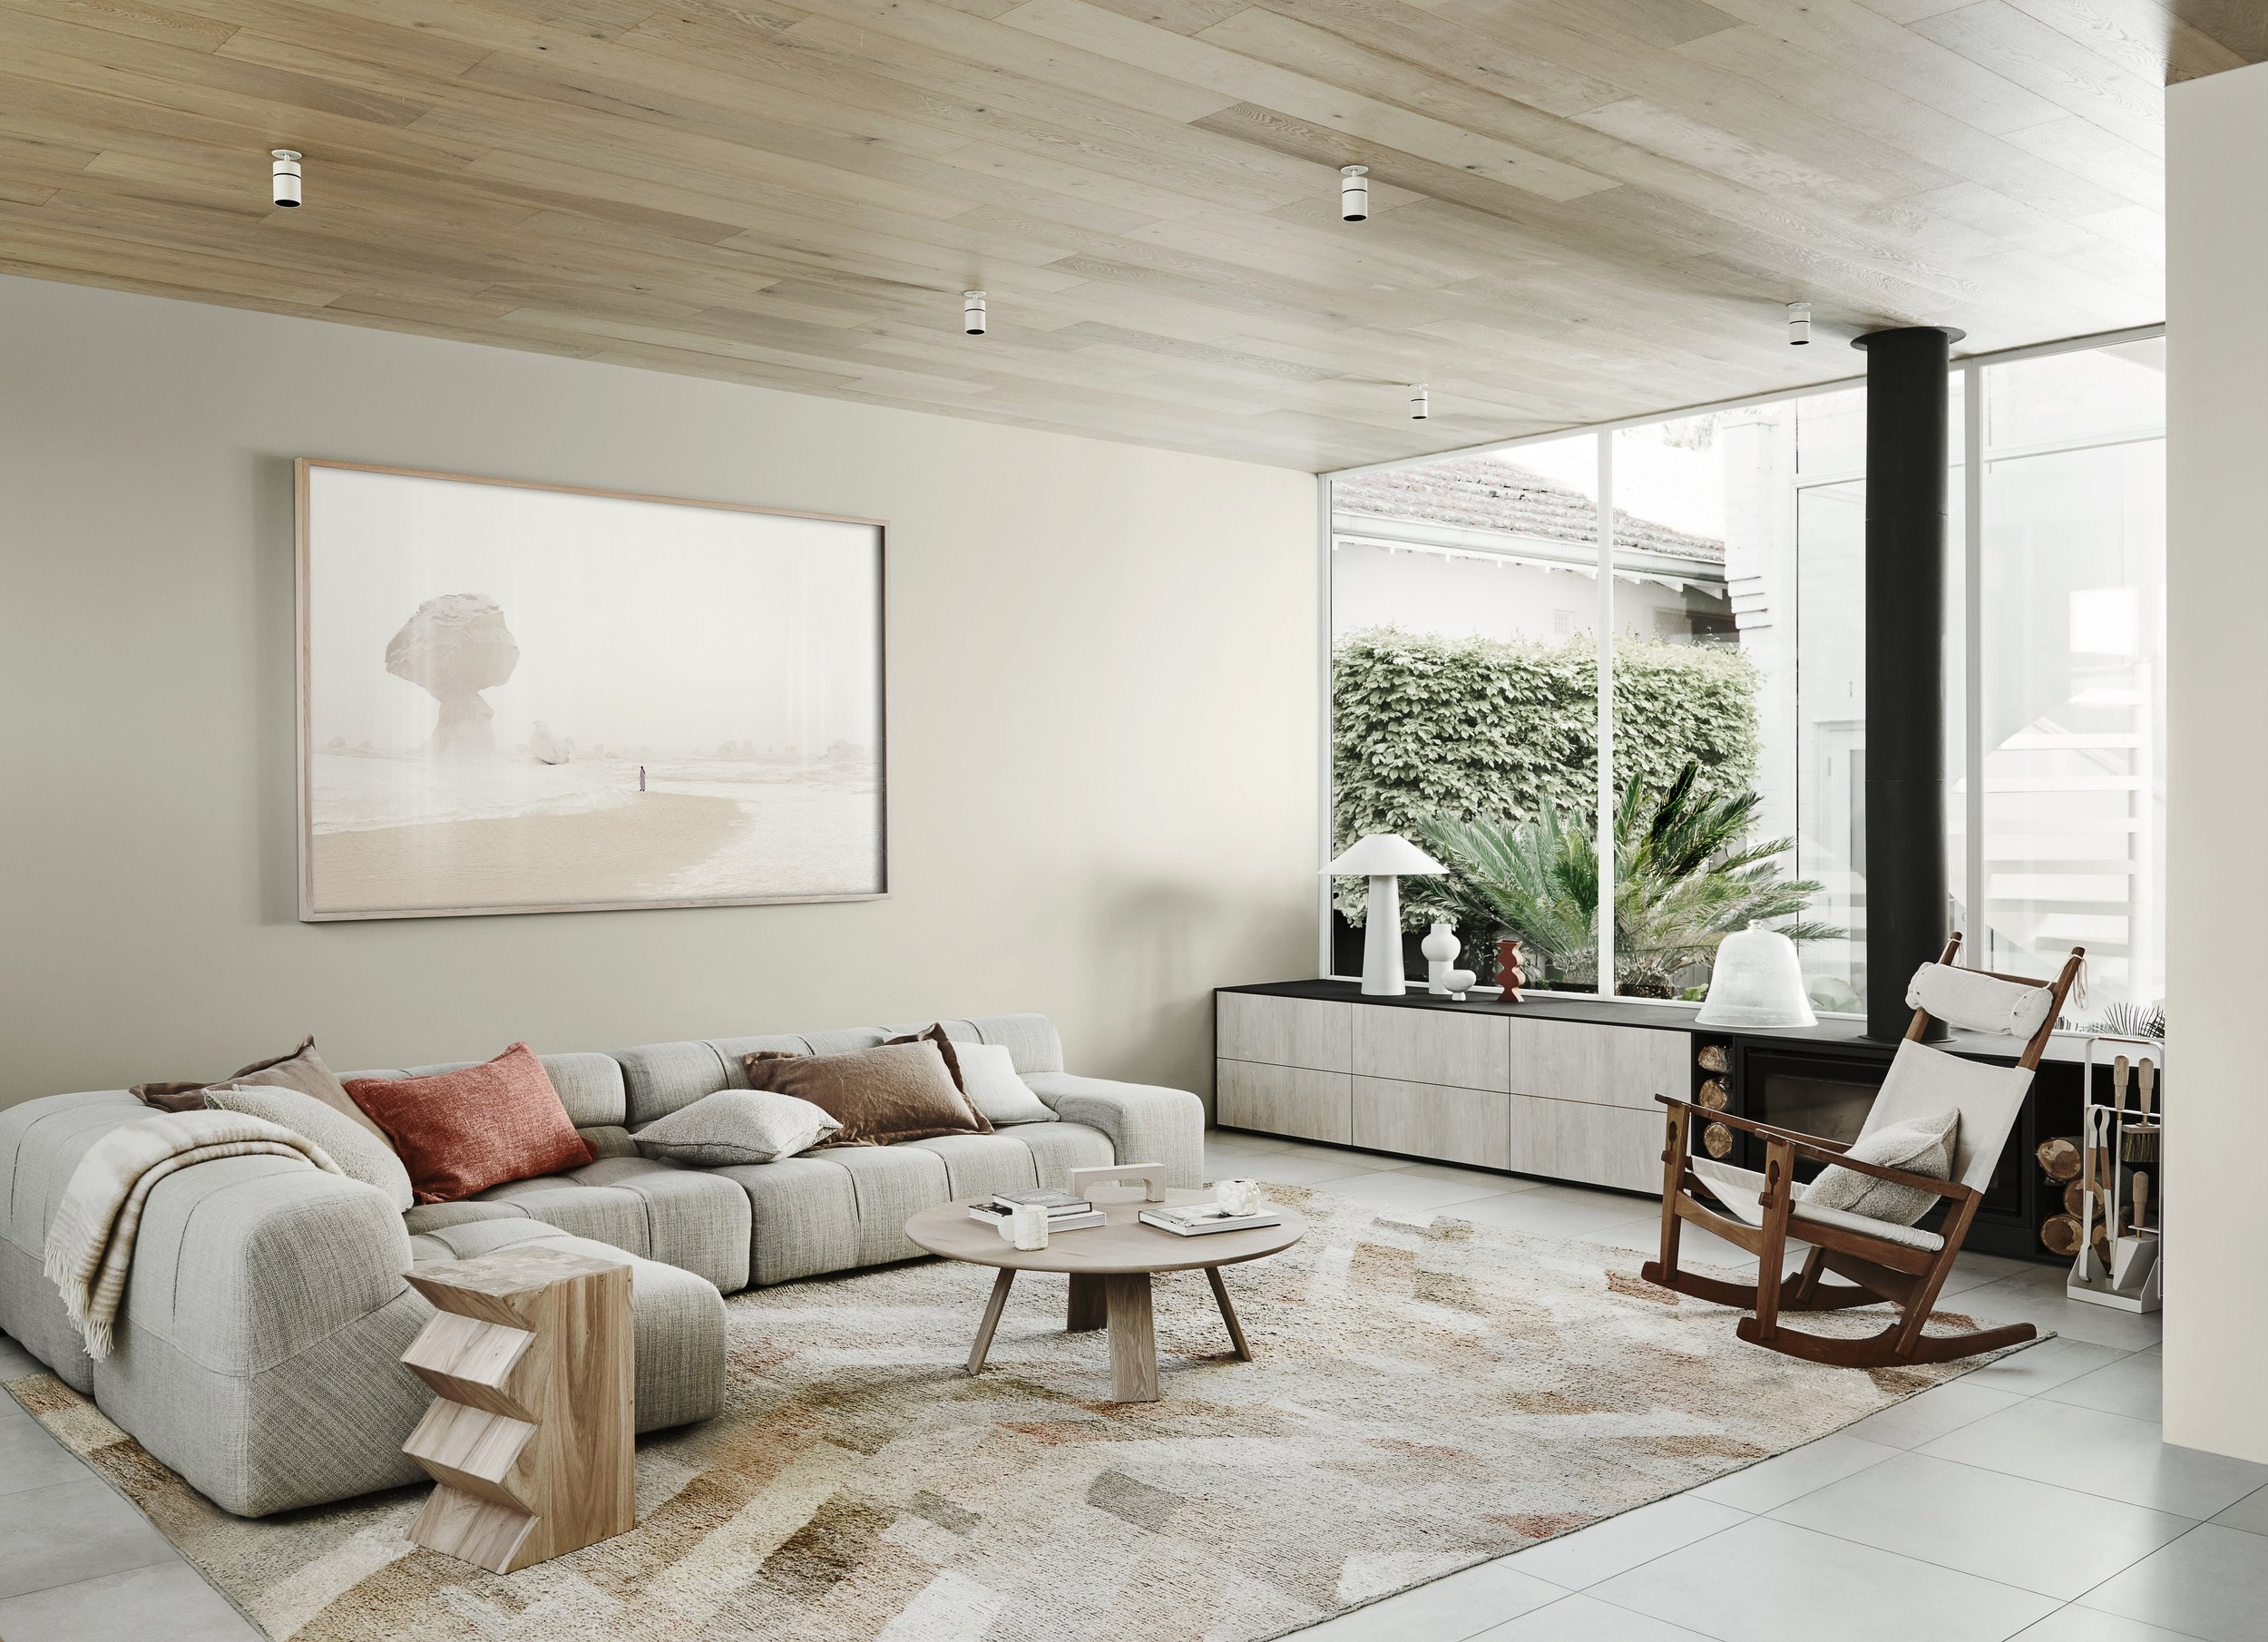 Dulux Colour Forecast 2020 – Grounded palette. Wall in Dulux Waitangi, wall in Dulux White Dune (right).